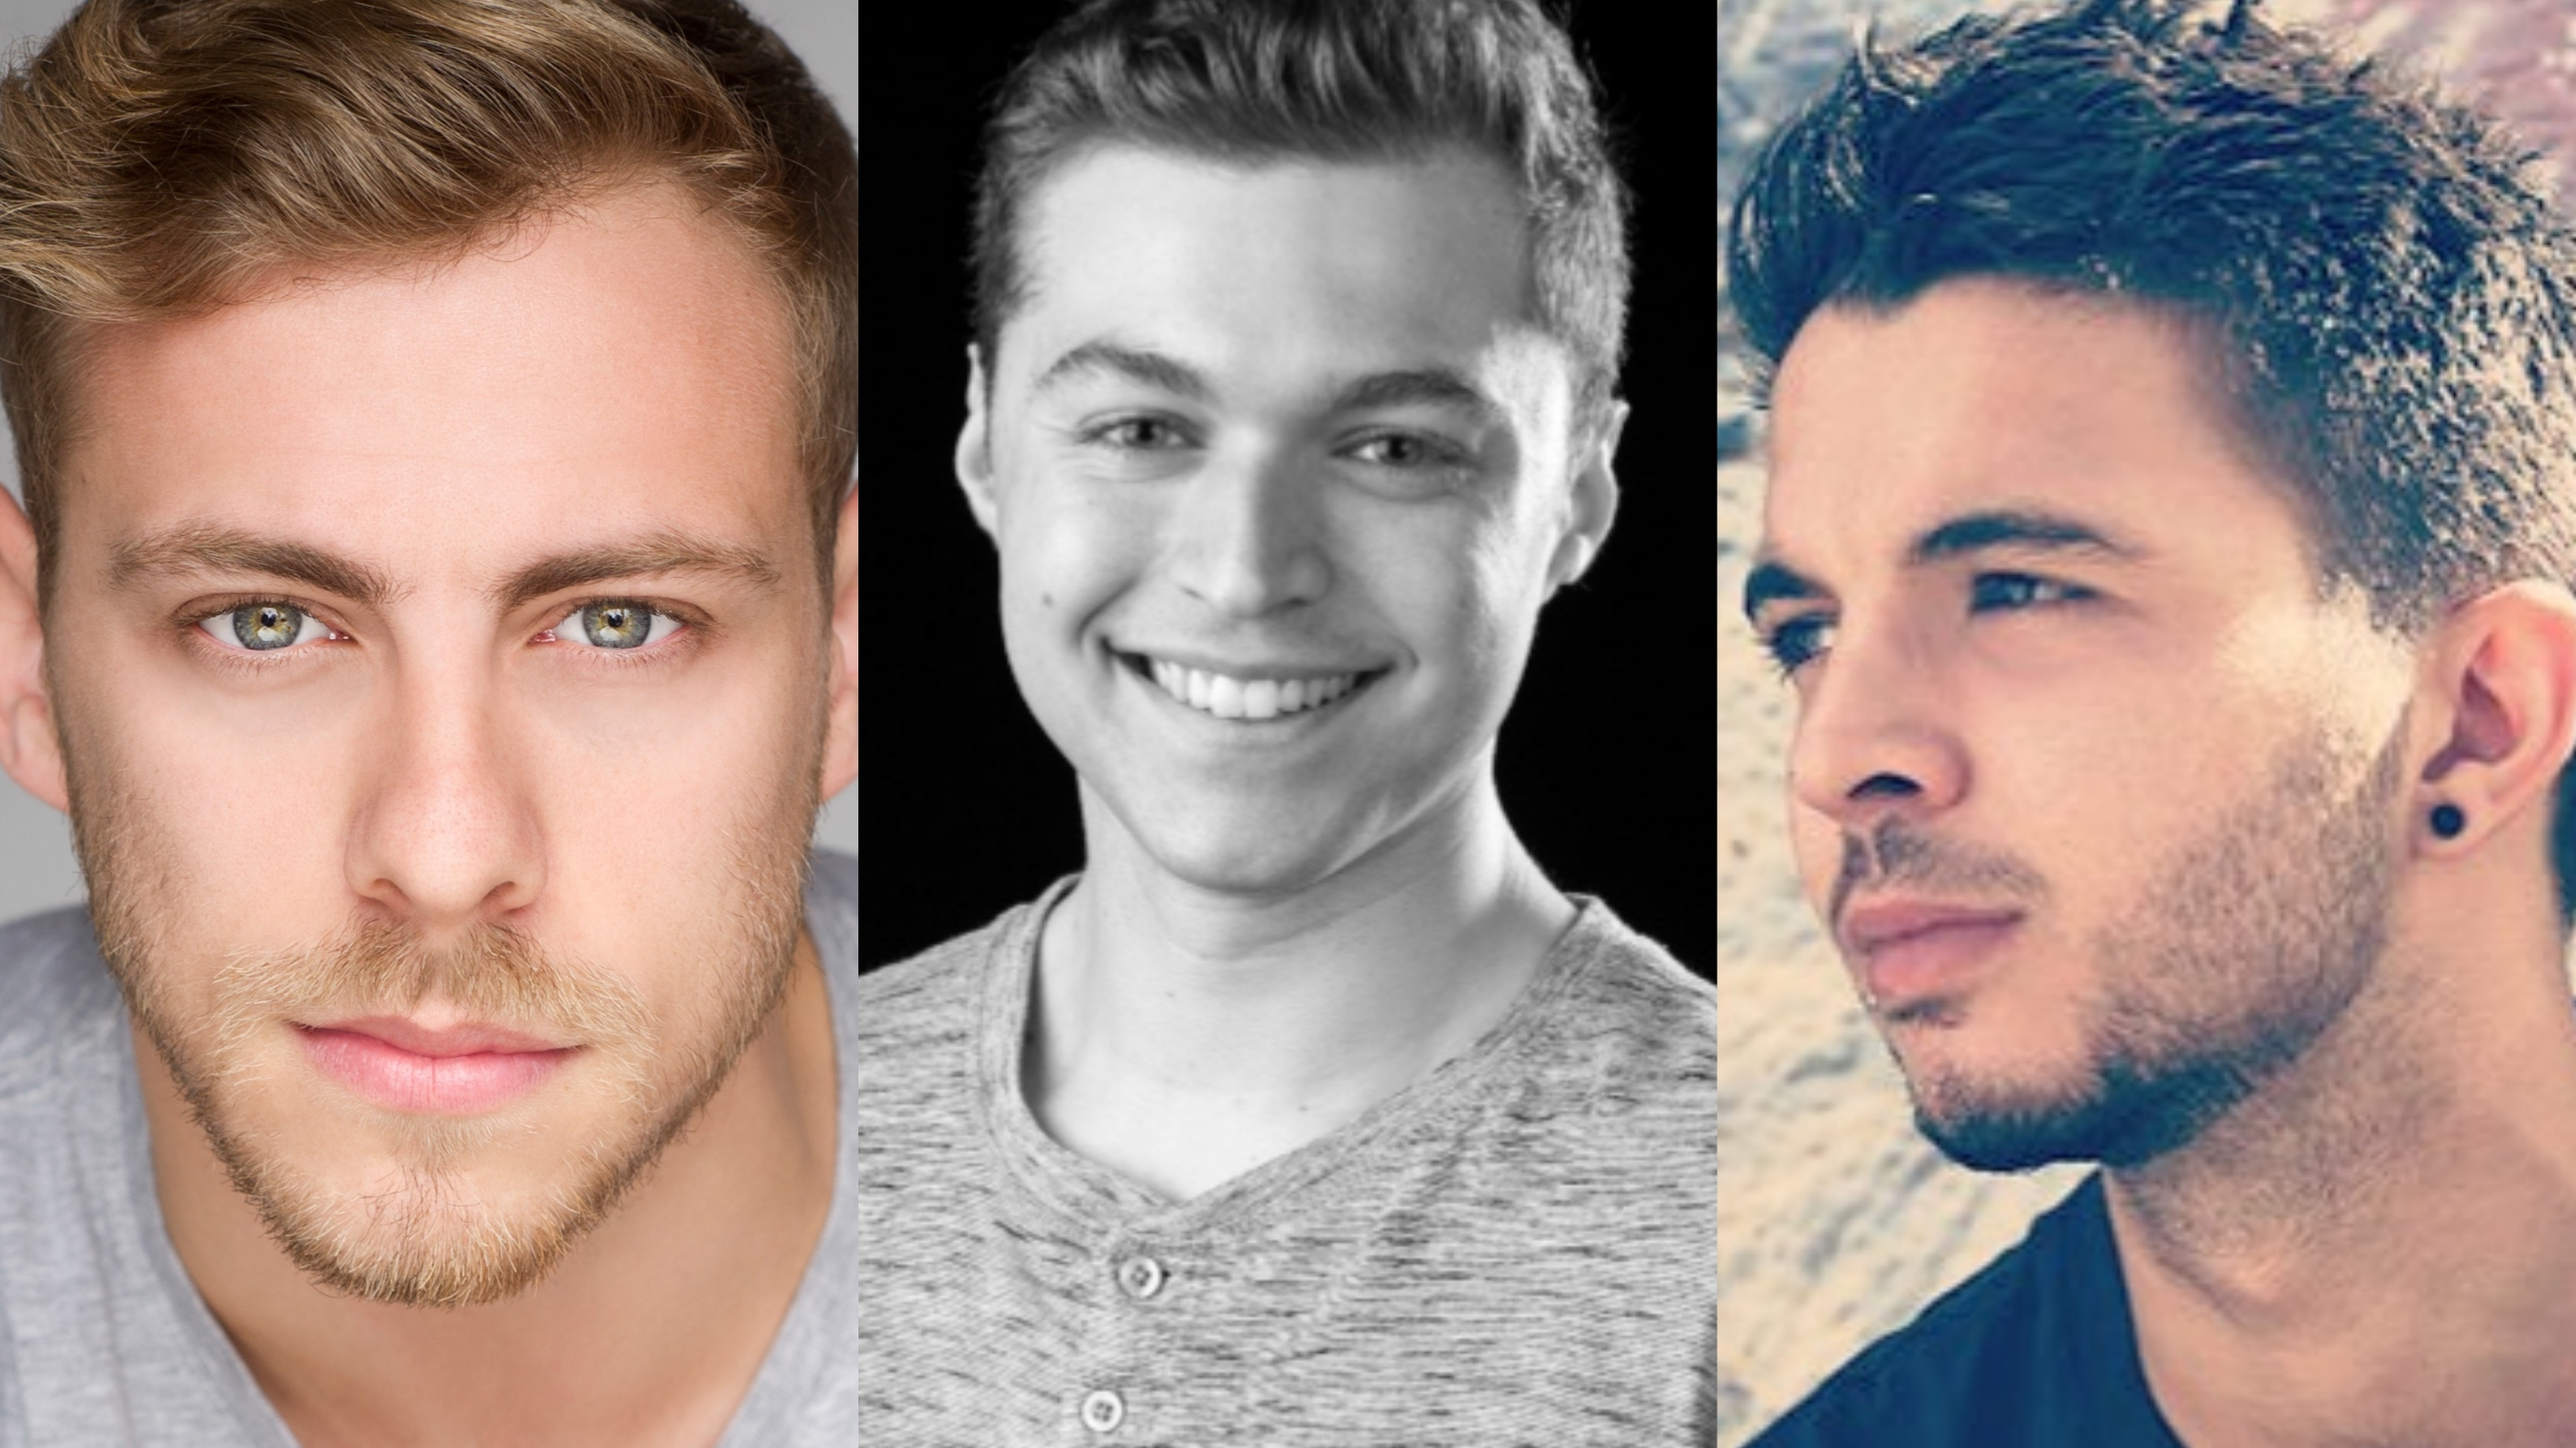 Sam Marks, Nathan Beech, and Nathaniel Hancock will be appearing in Dein Perry's Tap Dogs in London (image supplied)